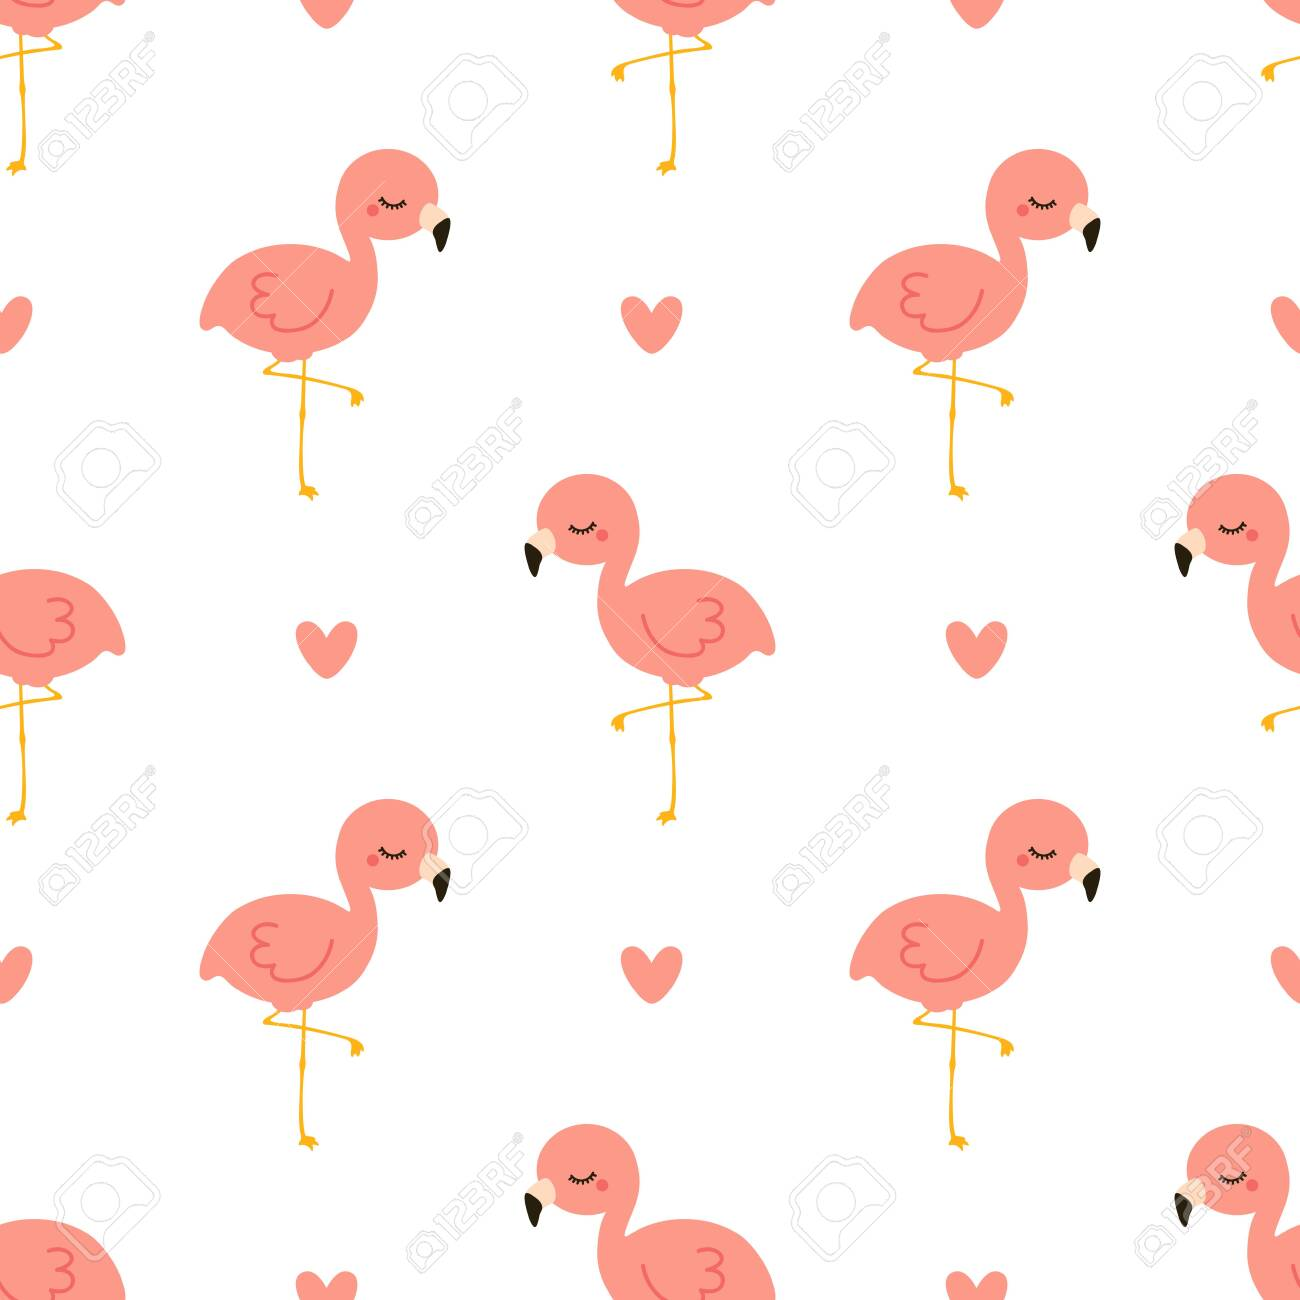 Cute flamingo with heart. Seamless vector pattern - 148049580